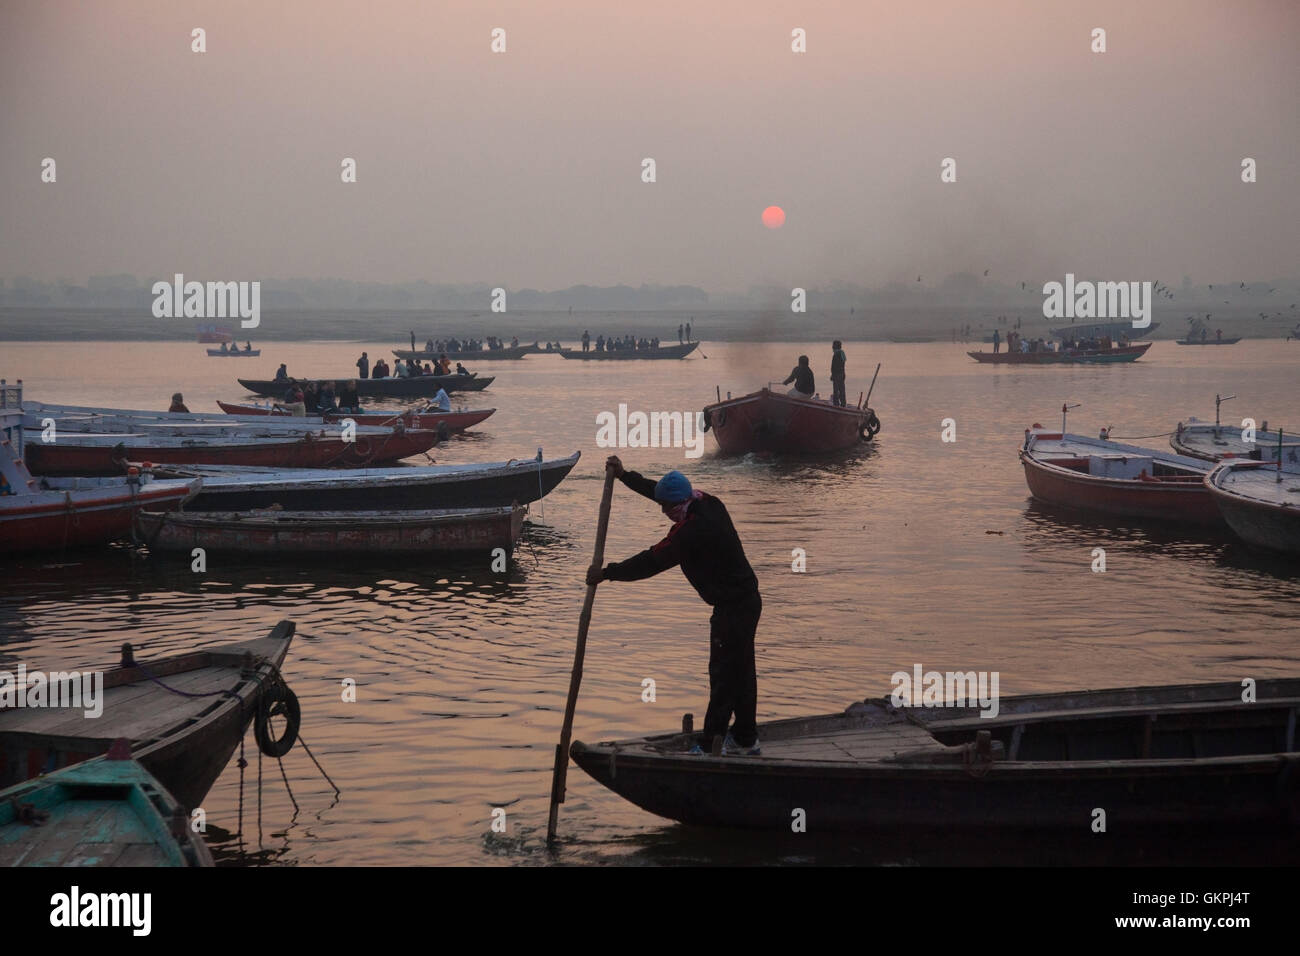 A boatman navigates his wooden boat as the sun rises over the Ganges River in Varanasi, India. - Stock Image